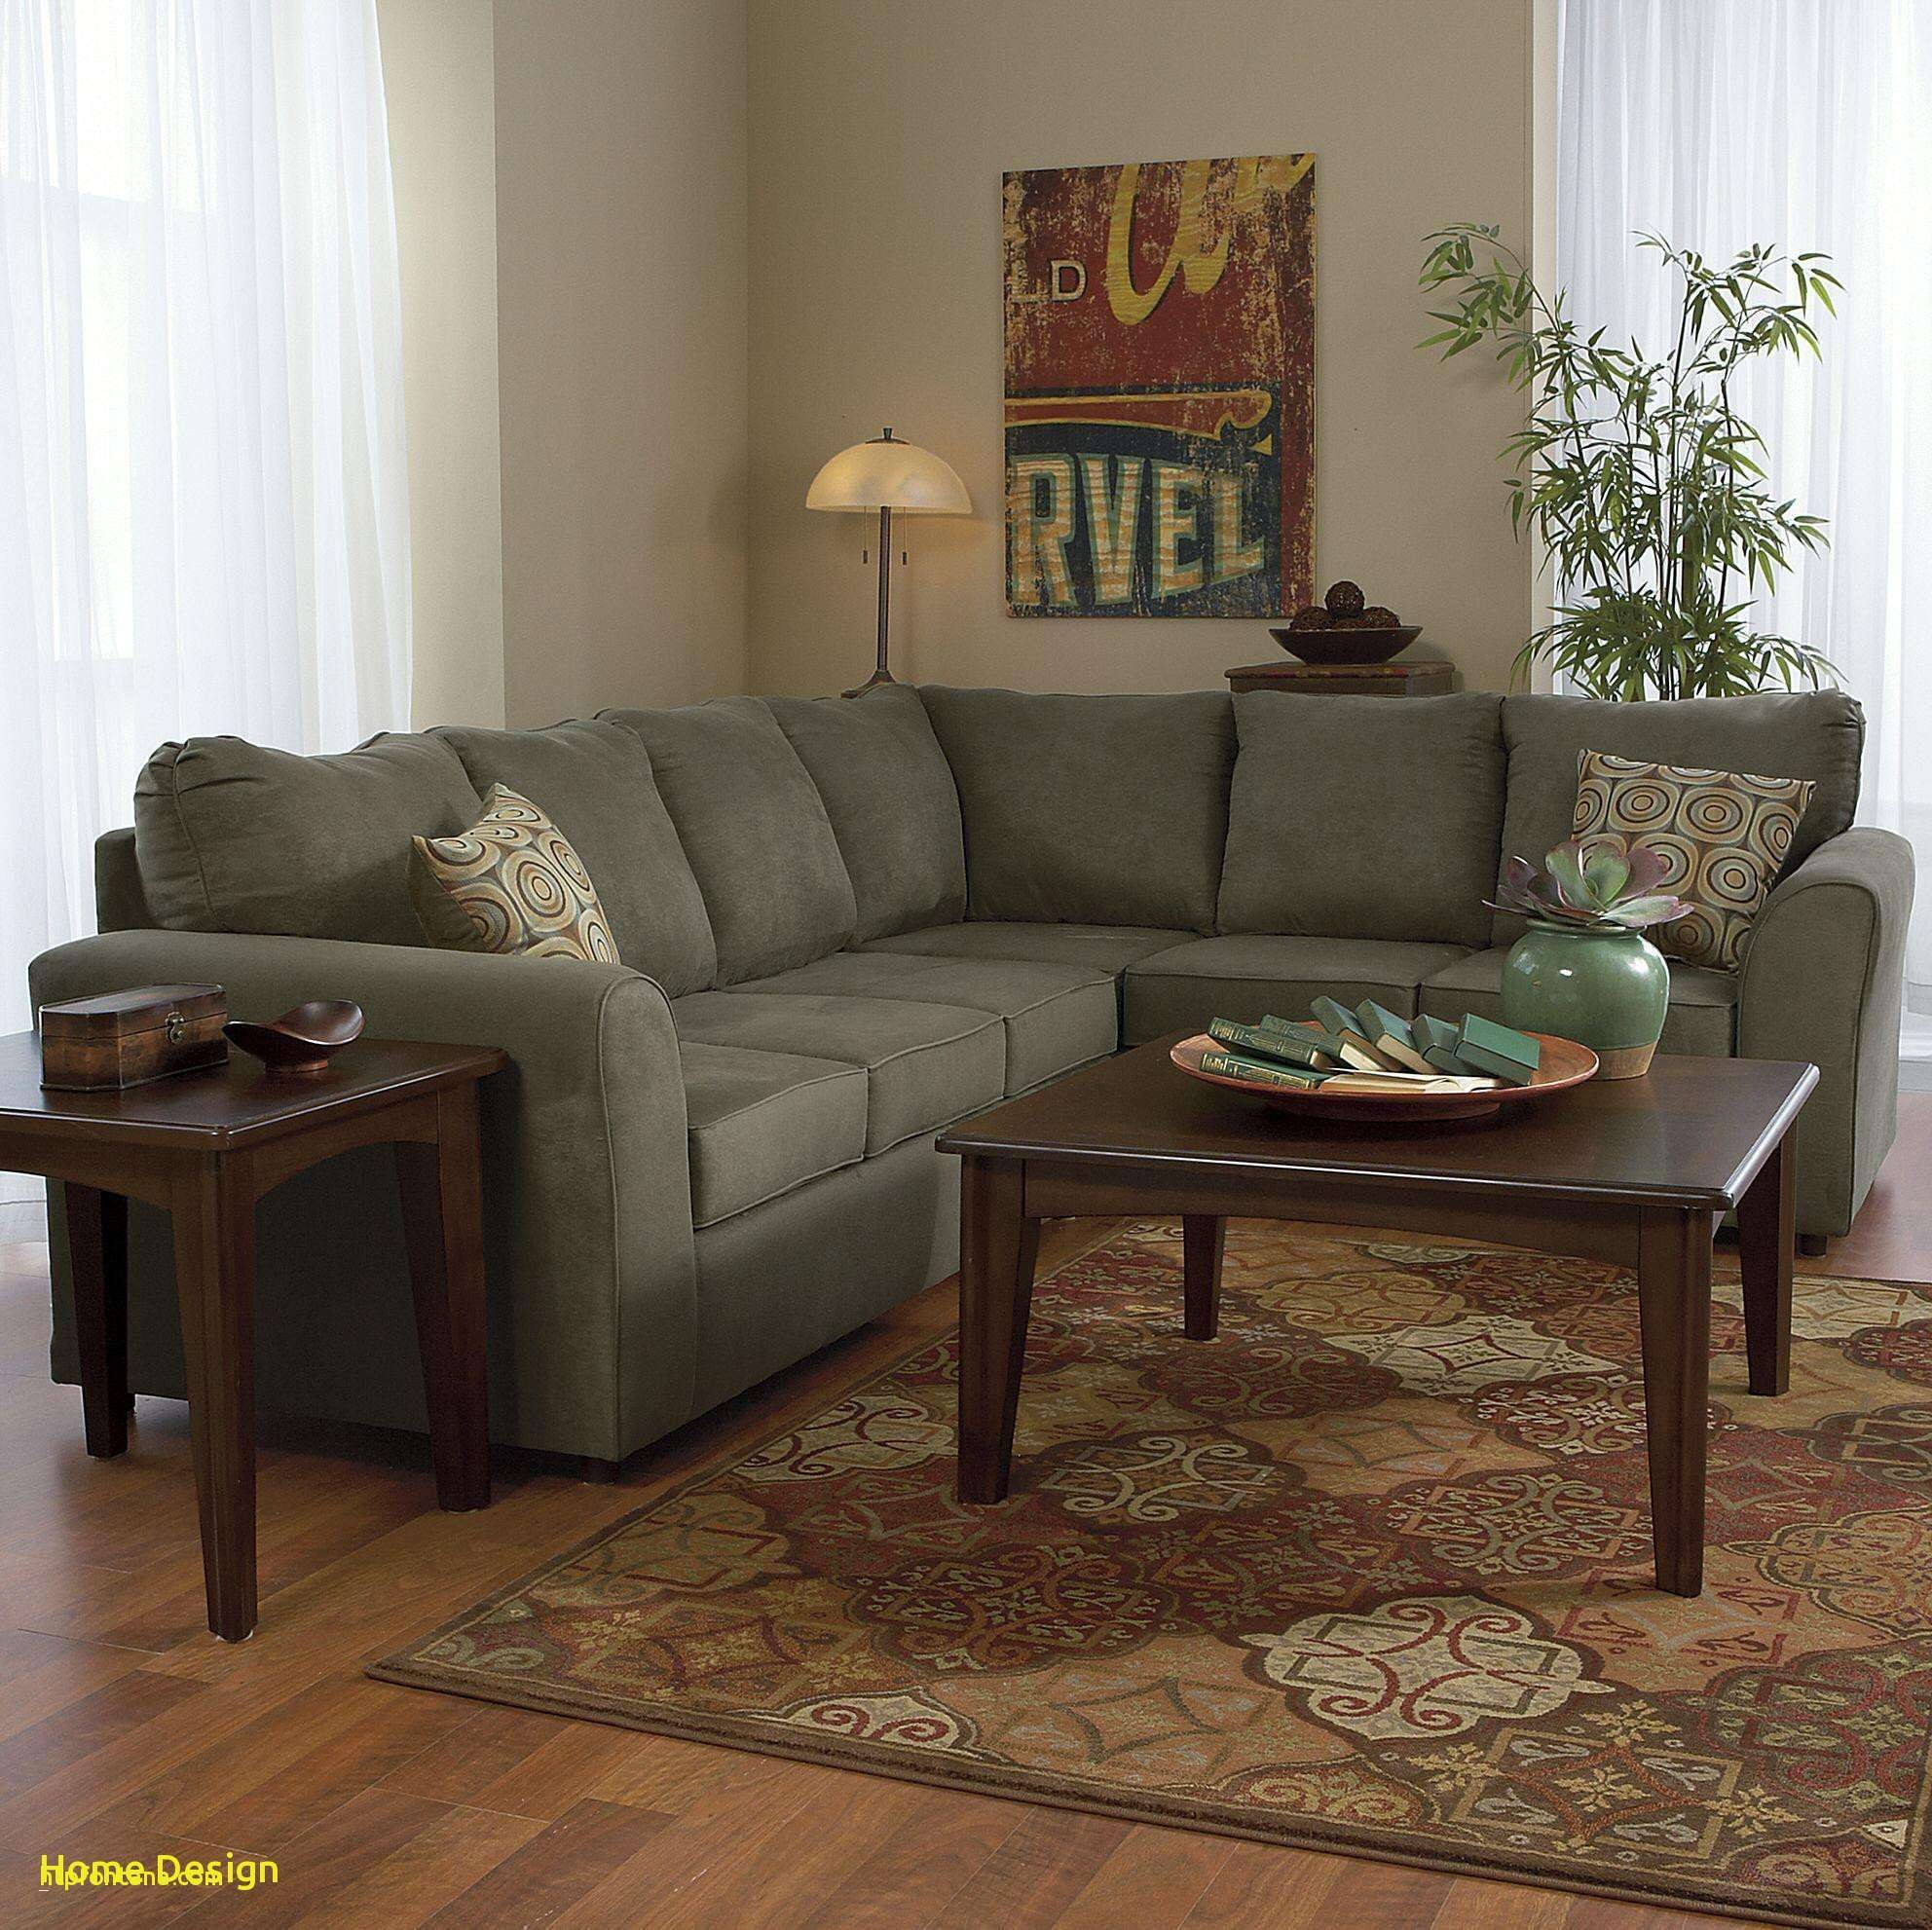 tall brown vase of backyard living room designs awesome living room vases wholesale new with regard to backyard living room designs fresh awesome designing a backyard living space home design of backyard living